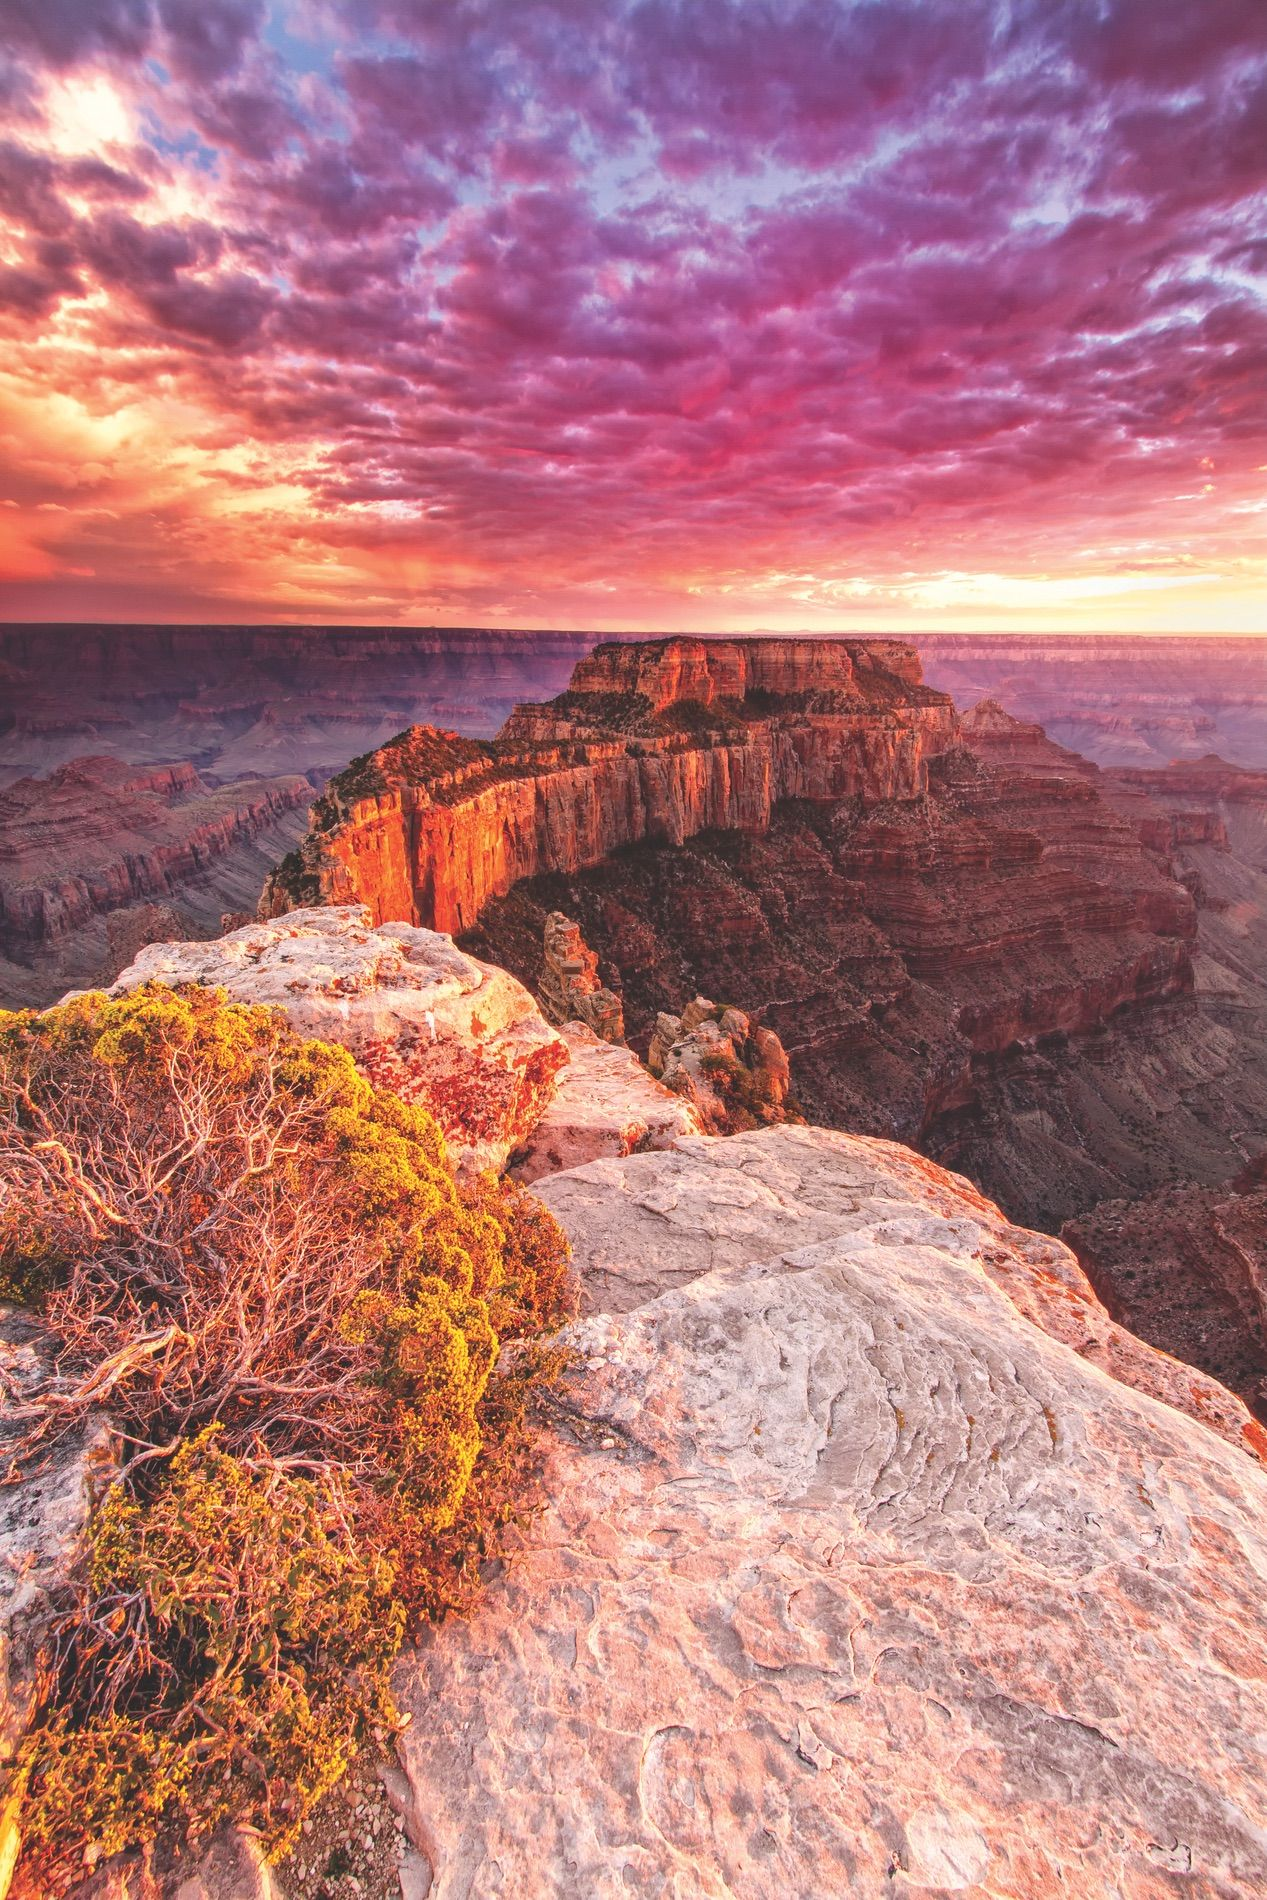 Beautiful Pictures Of The Grand Canyon